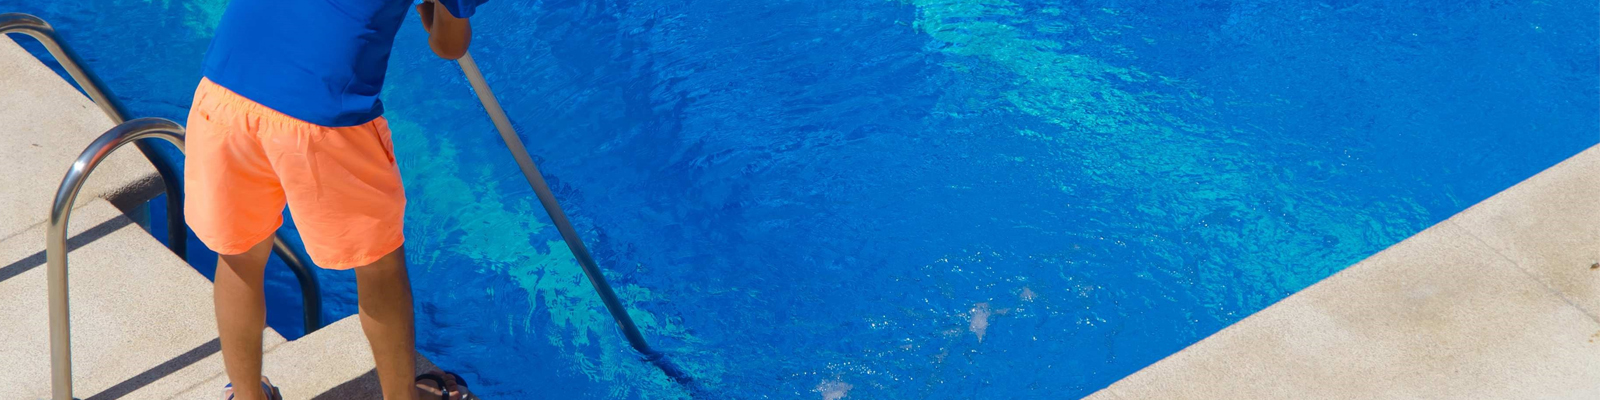 Swimming pool supplies in riyadh muqawiloon - Swimming pool chemicals suppliers ...